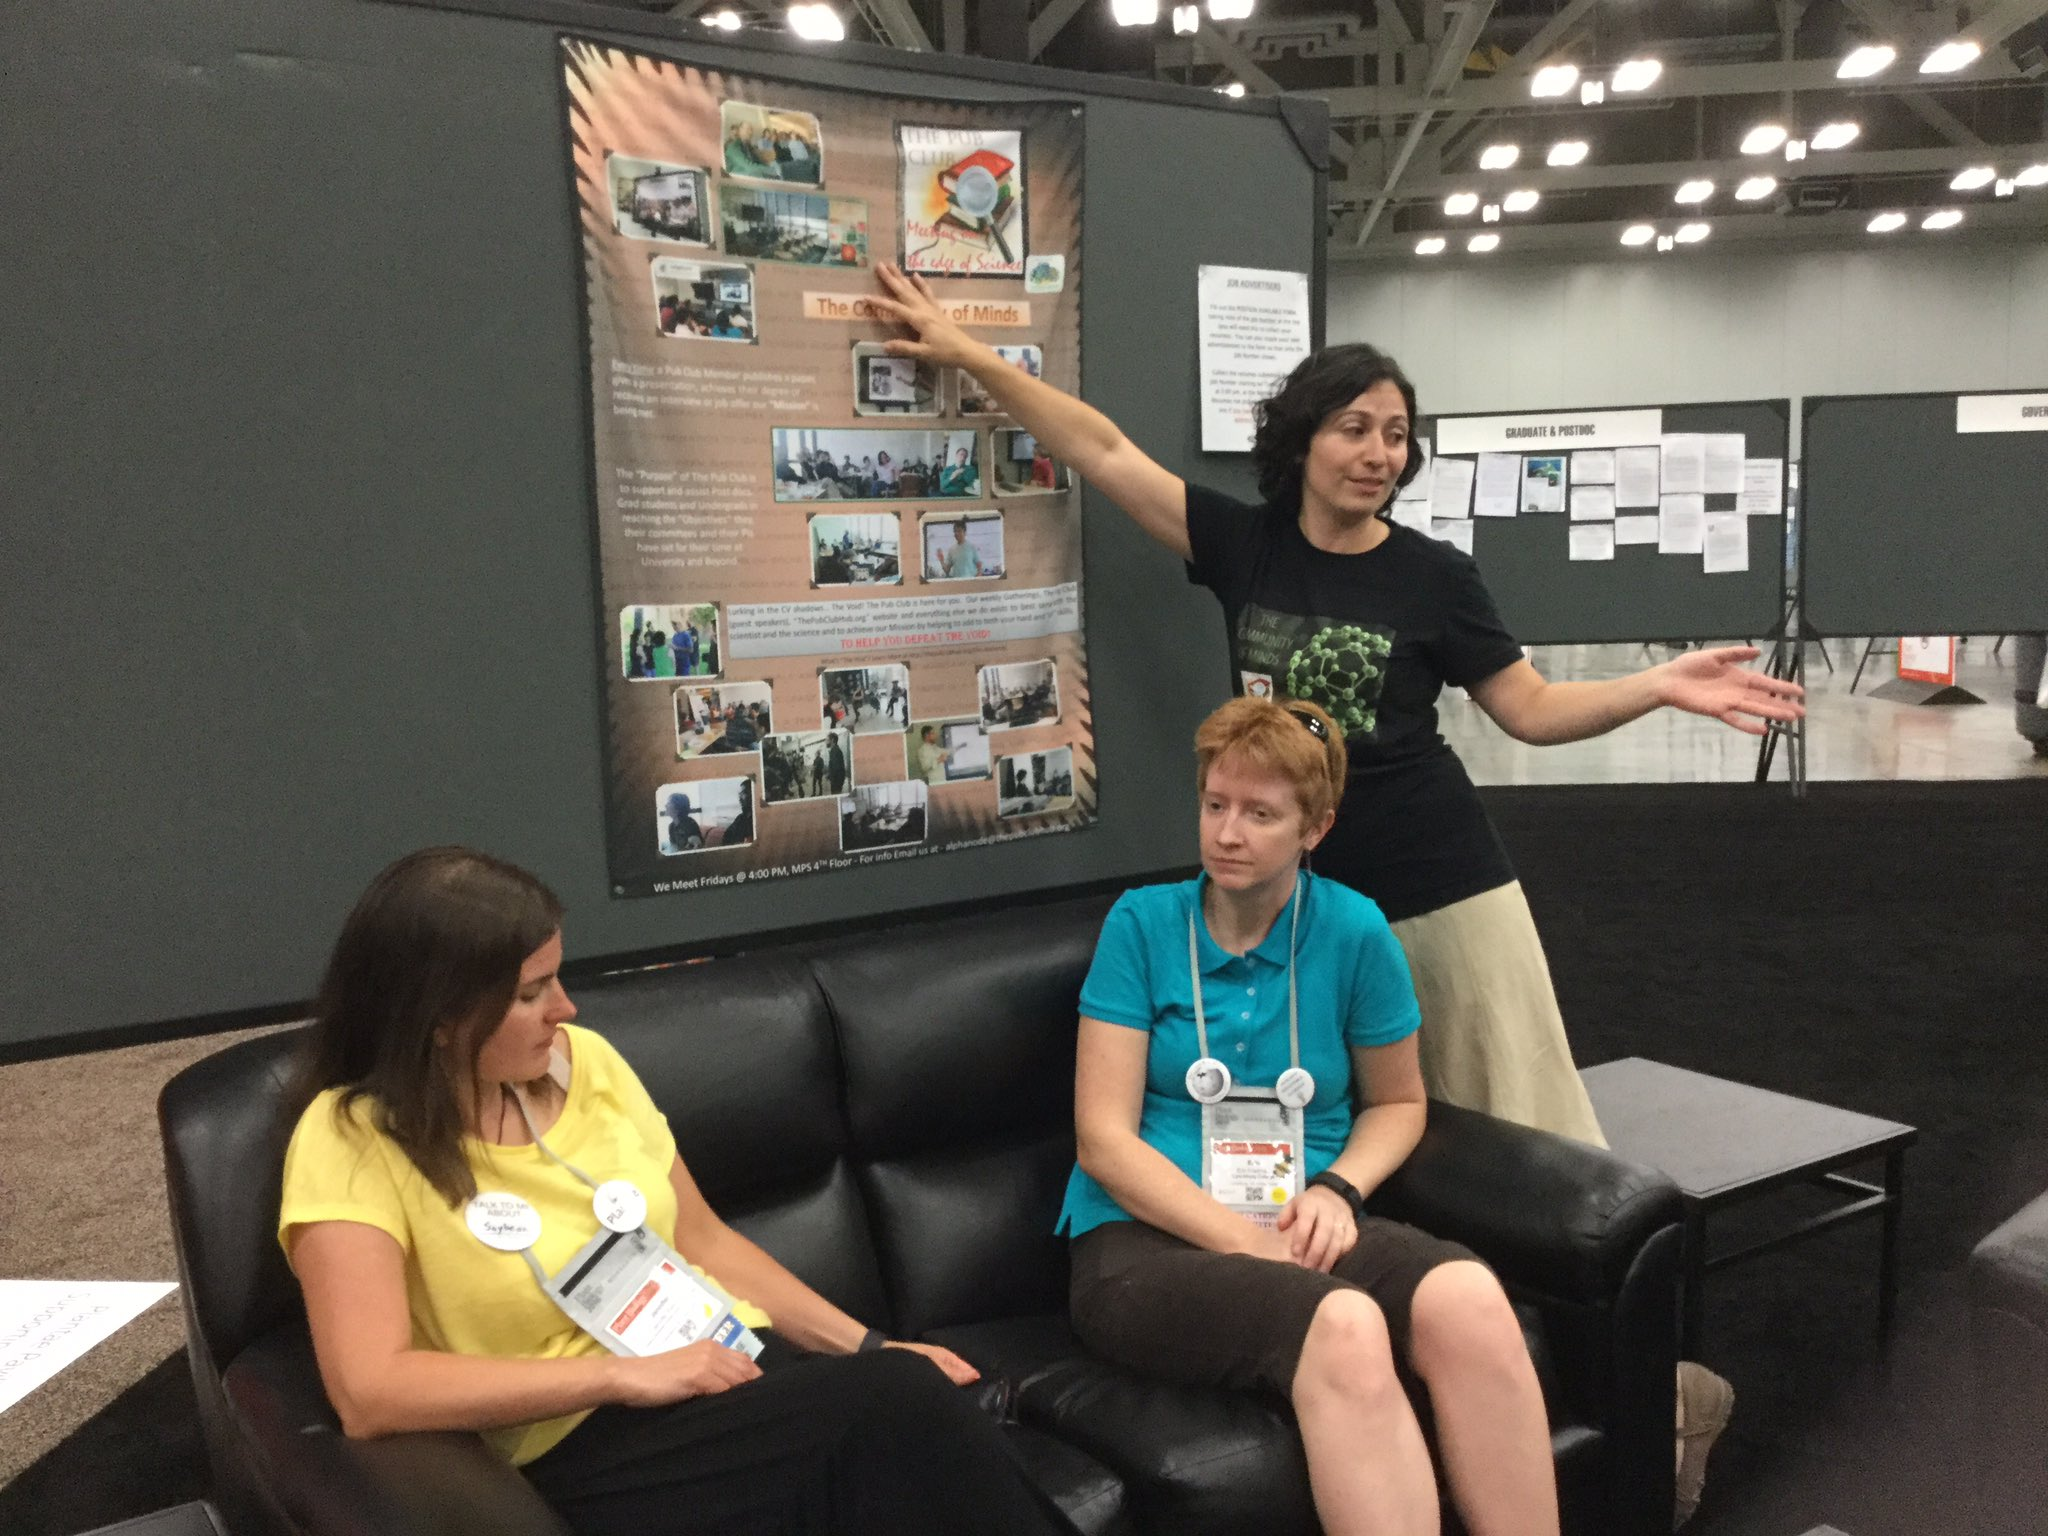 @huotbethany encourages students to begin thinking of their degree as more part of their career #plantbio16 https://t.co/8eNjy08tuo